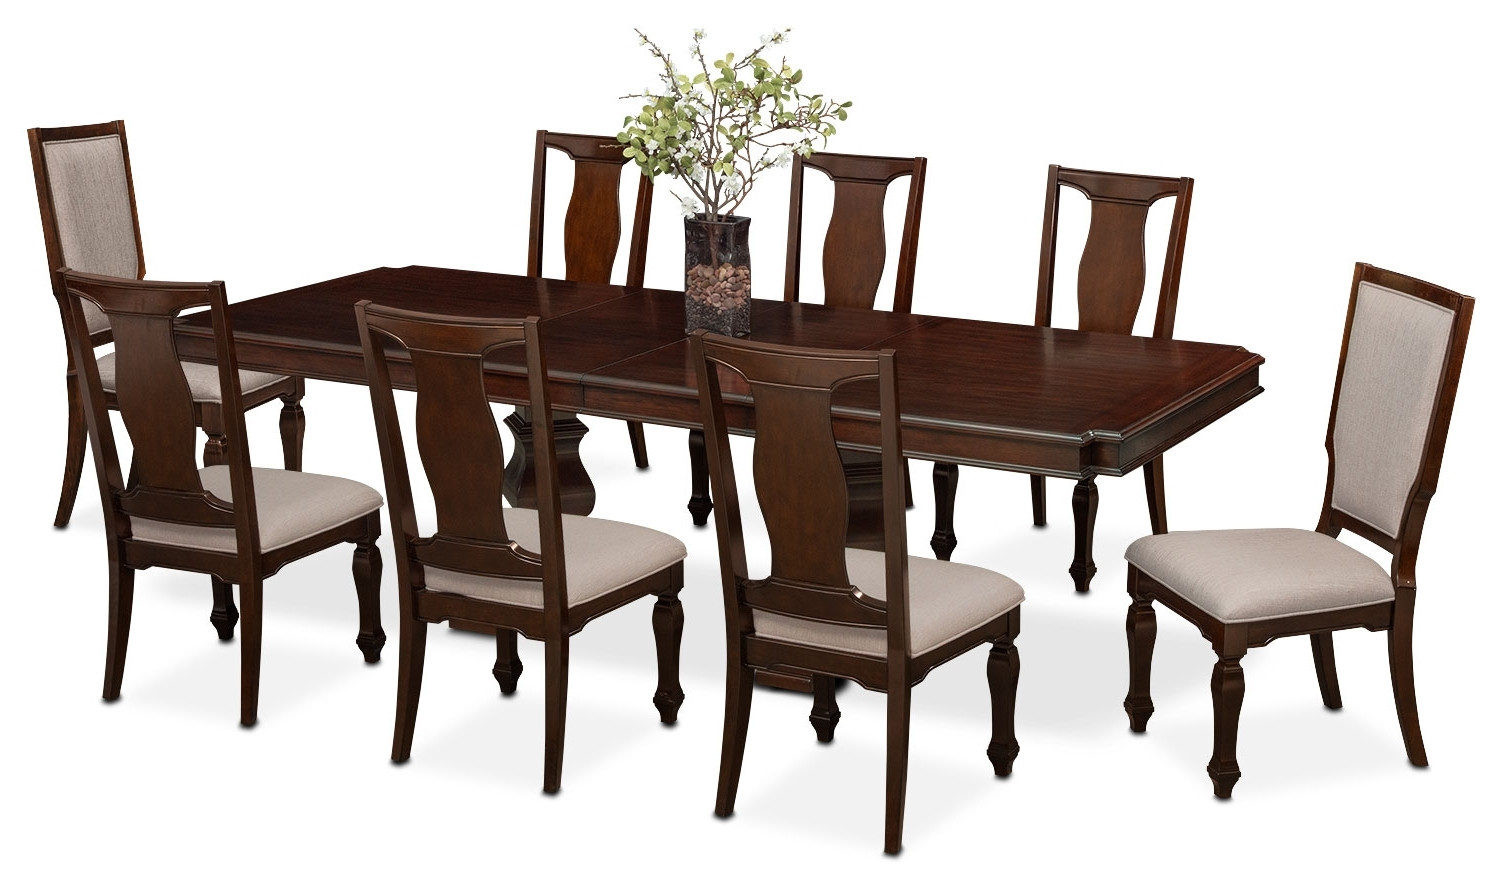 Vienna Dining Table, 6 Side Chairs And 2 Upholstered Side Chairs with Famous Vienna Dining Tables